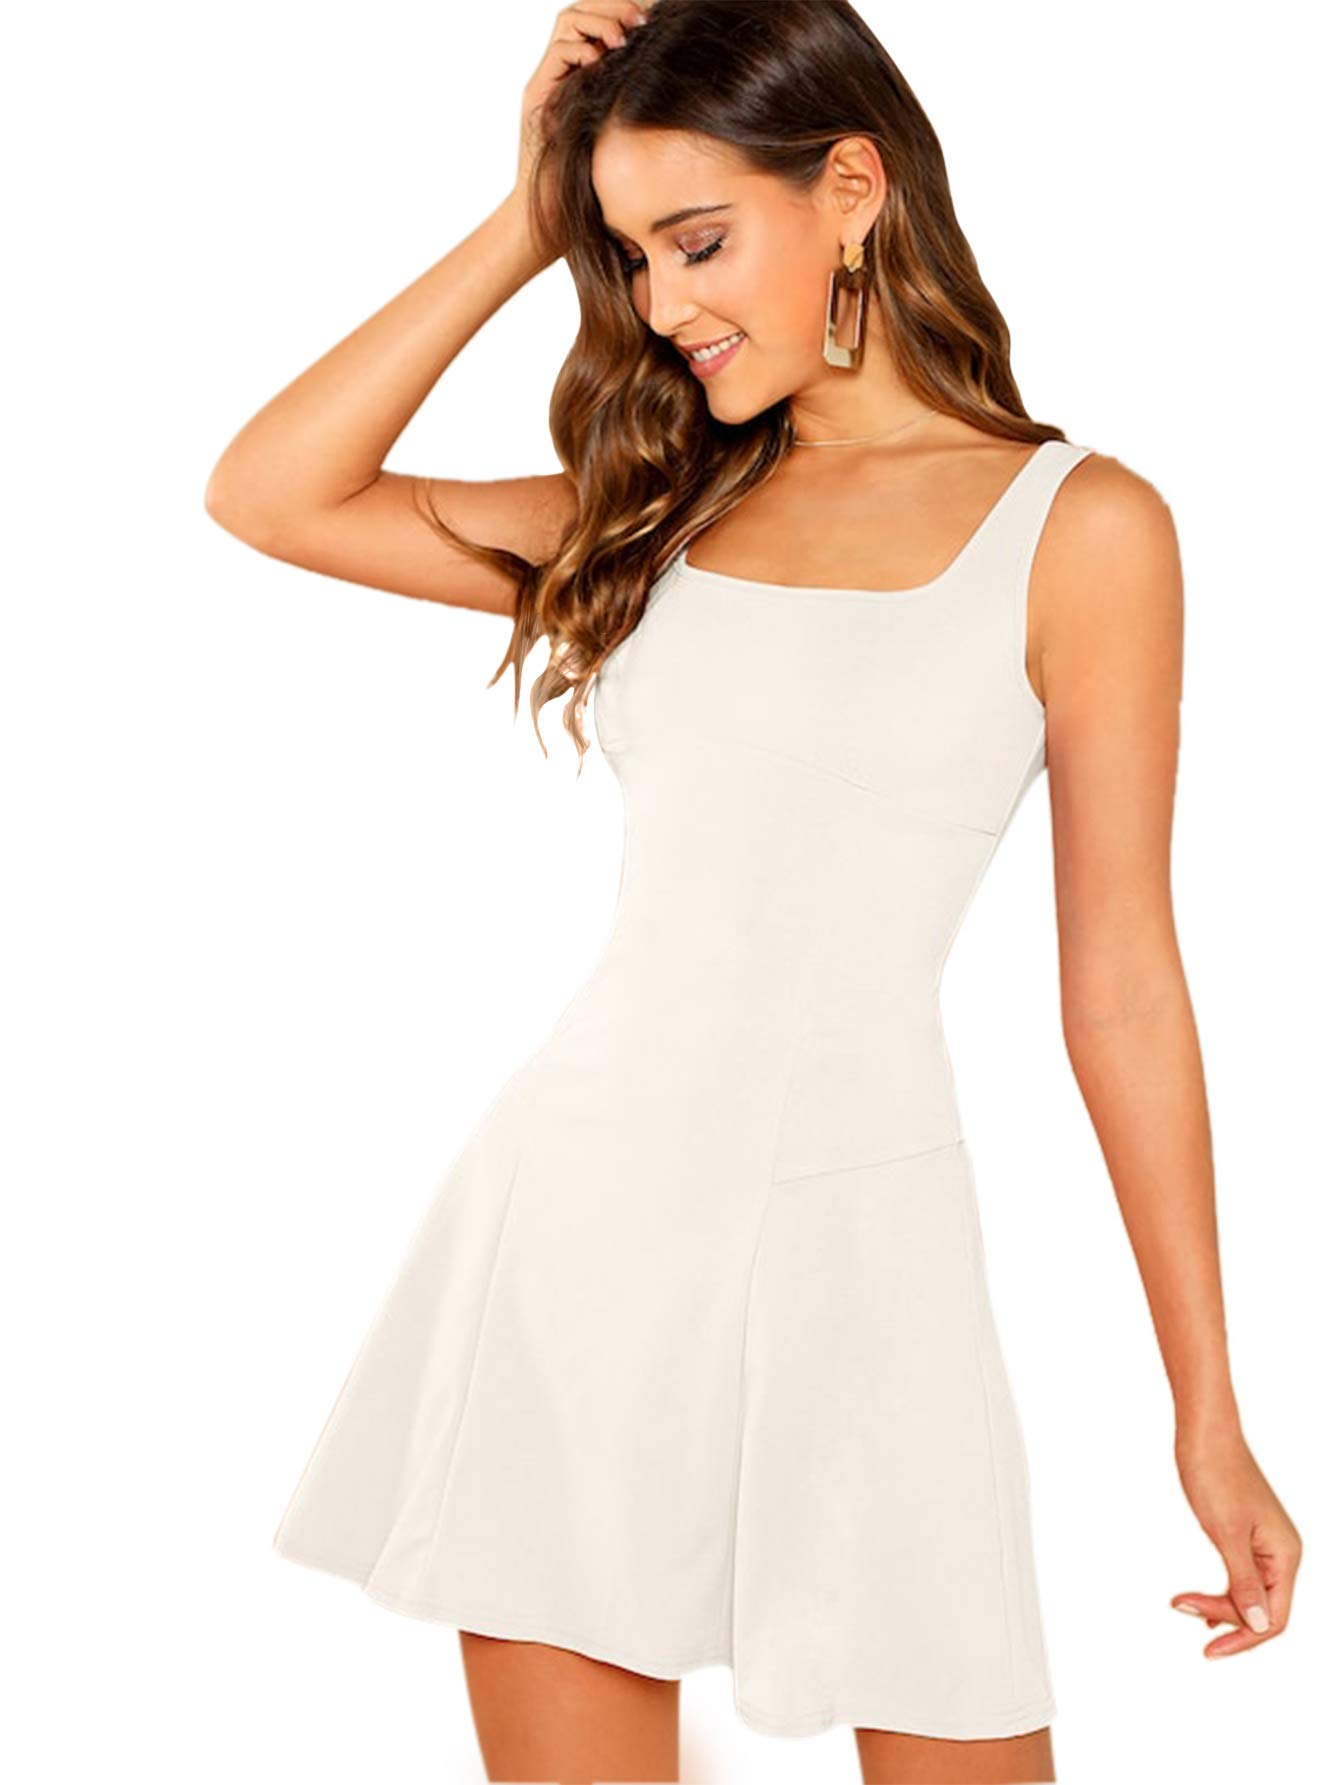 Romwe Women's Sleeveless Zipper A Line Party Mini Bodycon Dress